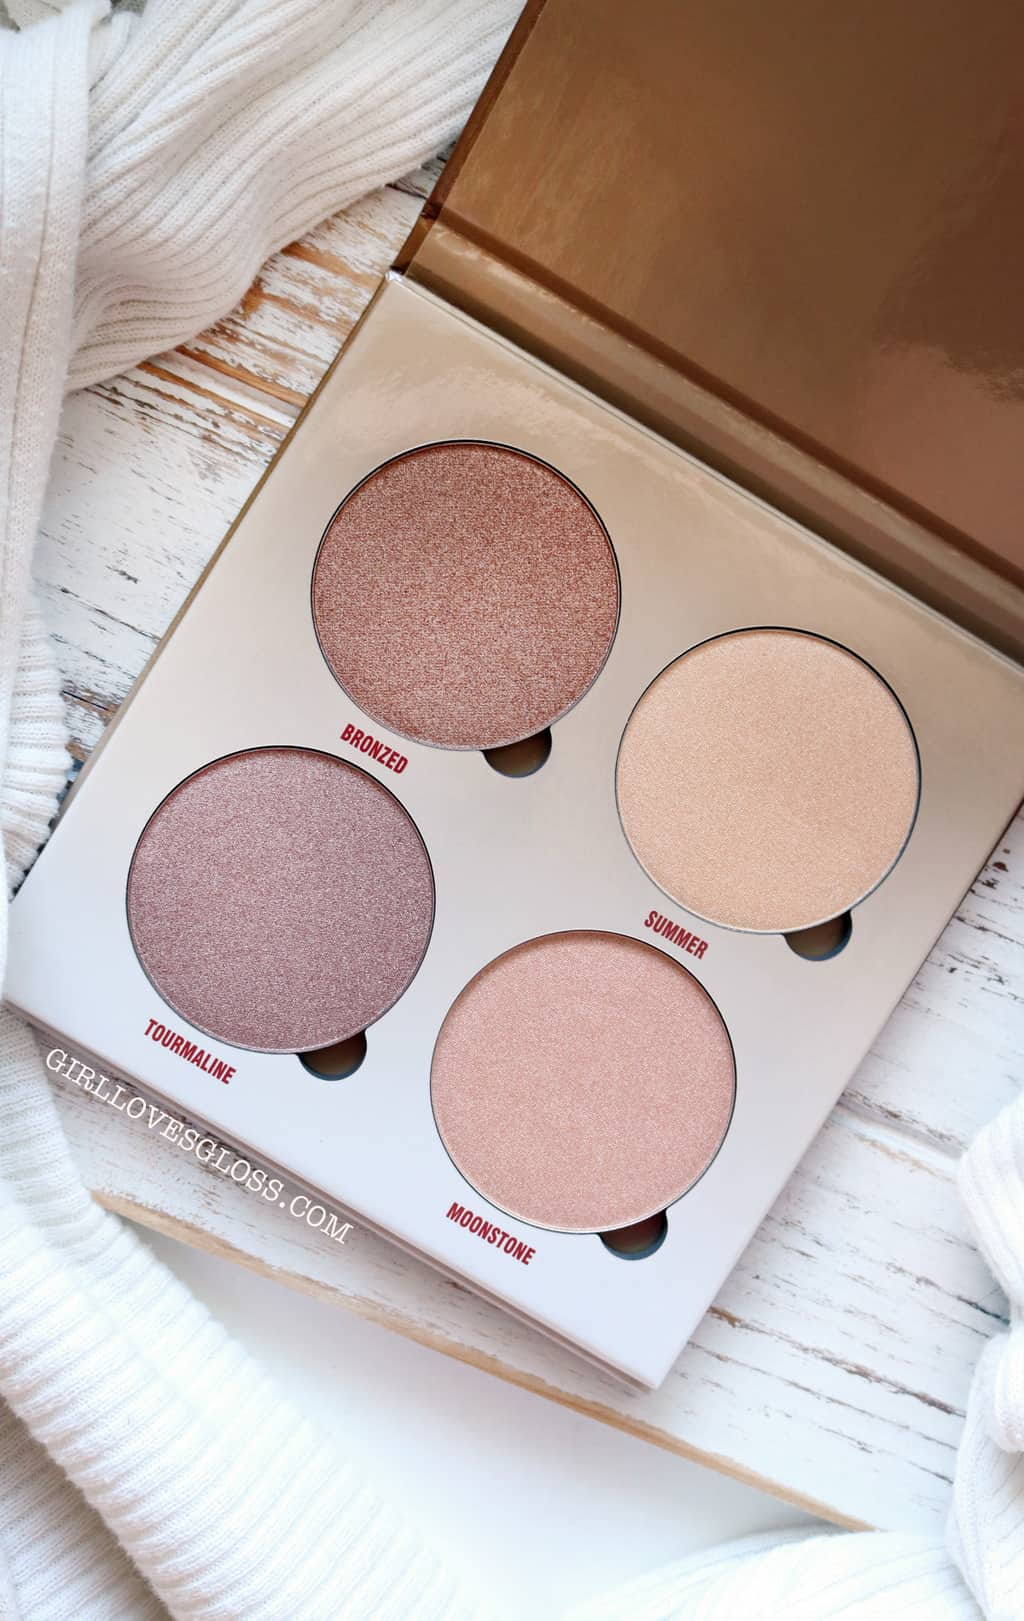 The Glow You Need | Anastasia Beverly Hills Glow Kit in Sundipped